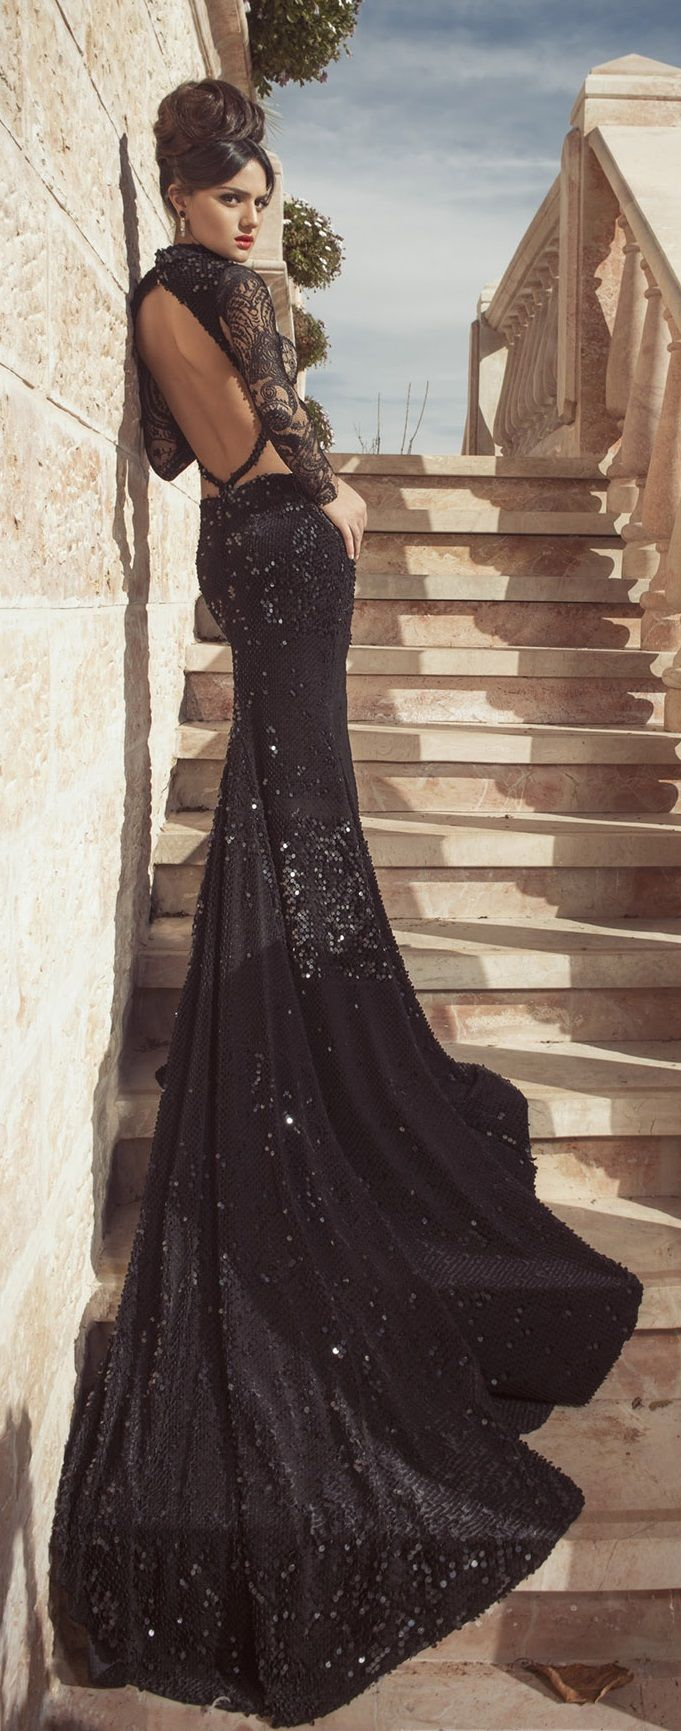 best dreams images on pinterest black gowns evening